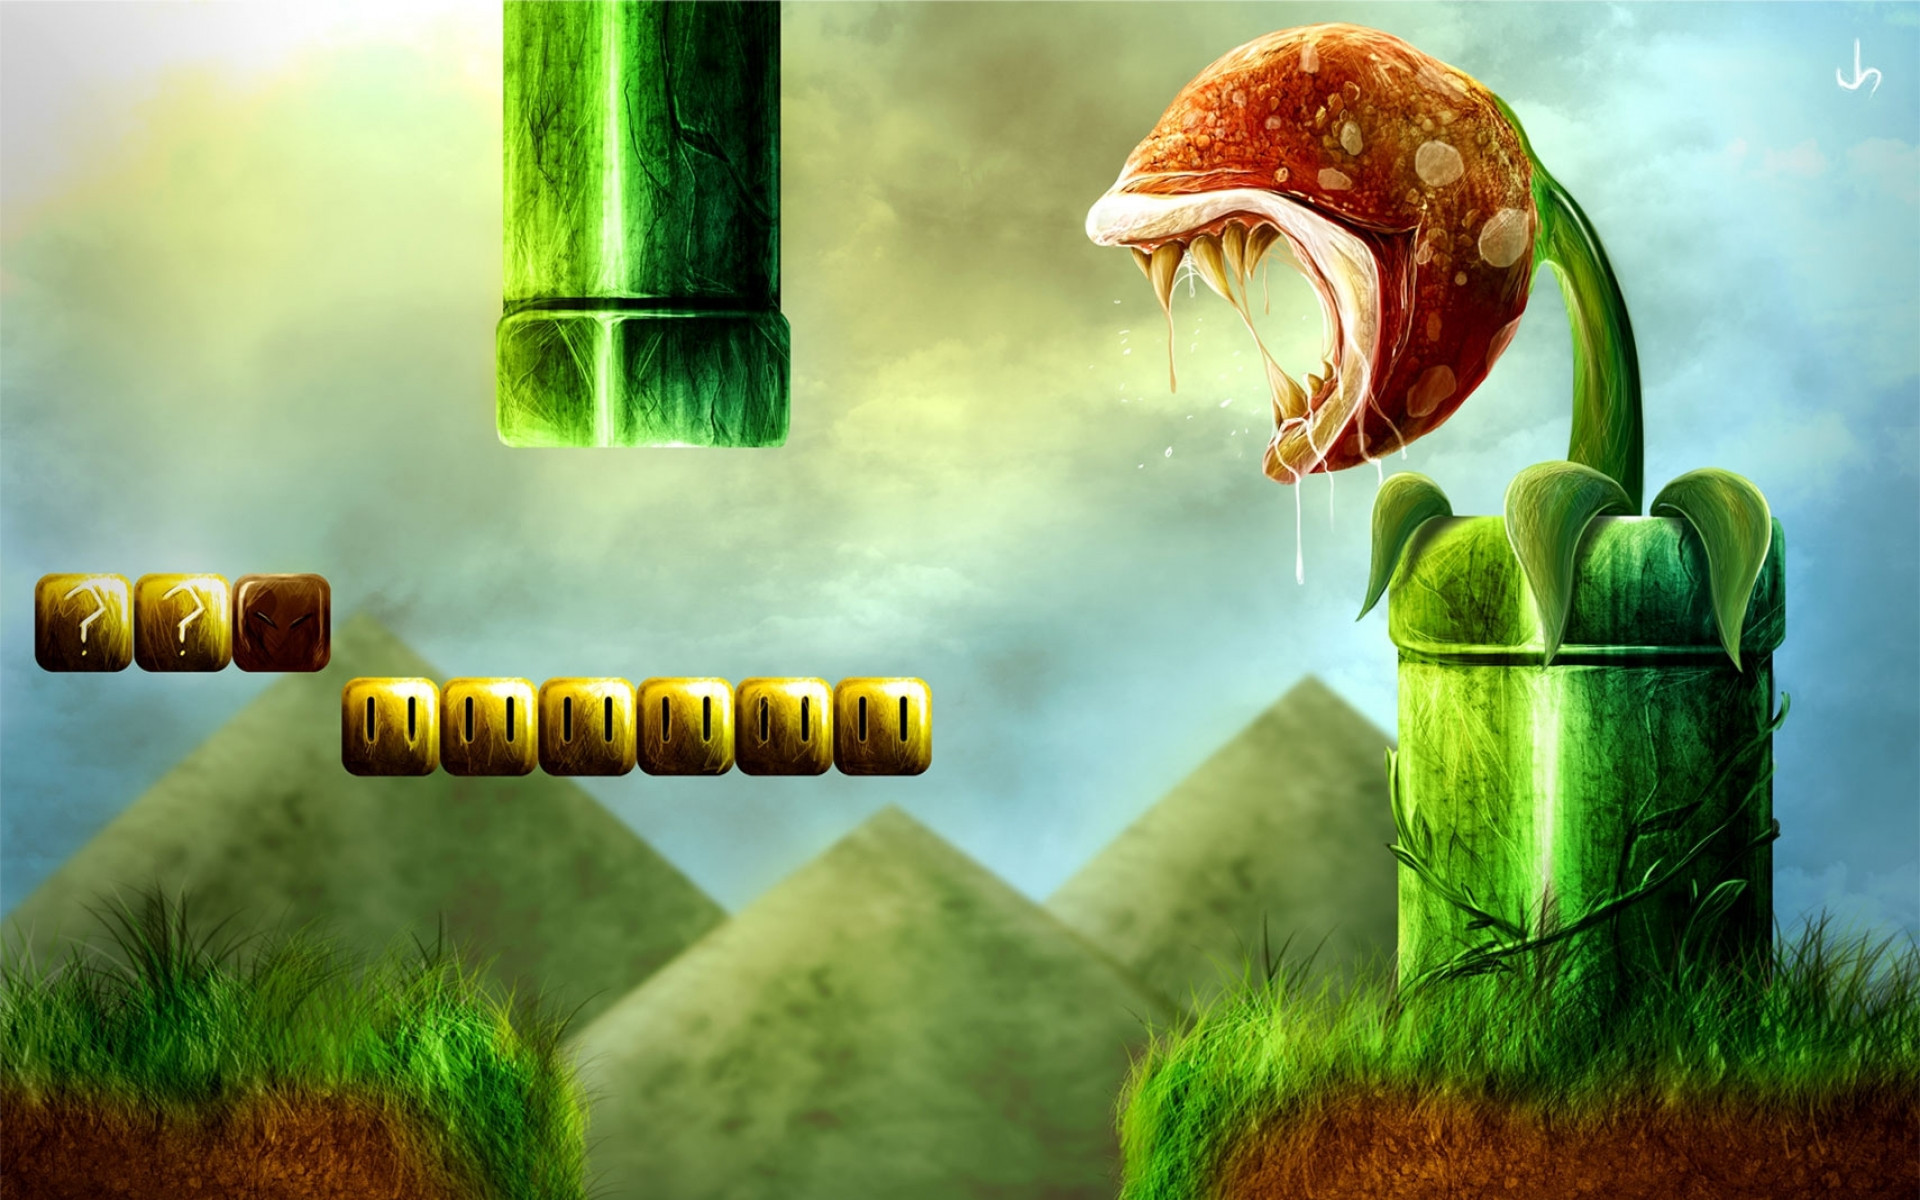 Wallpaper Video Games 80 Images